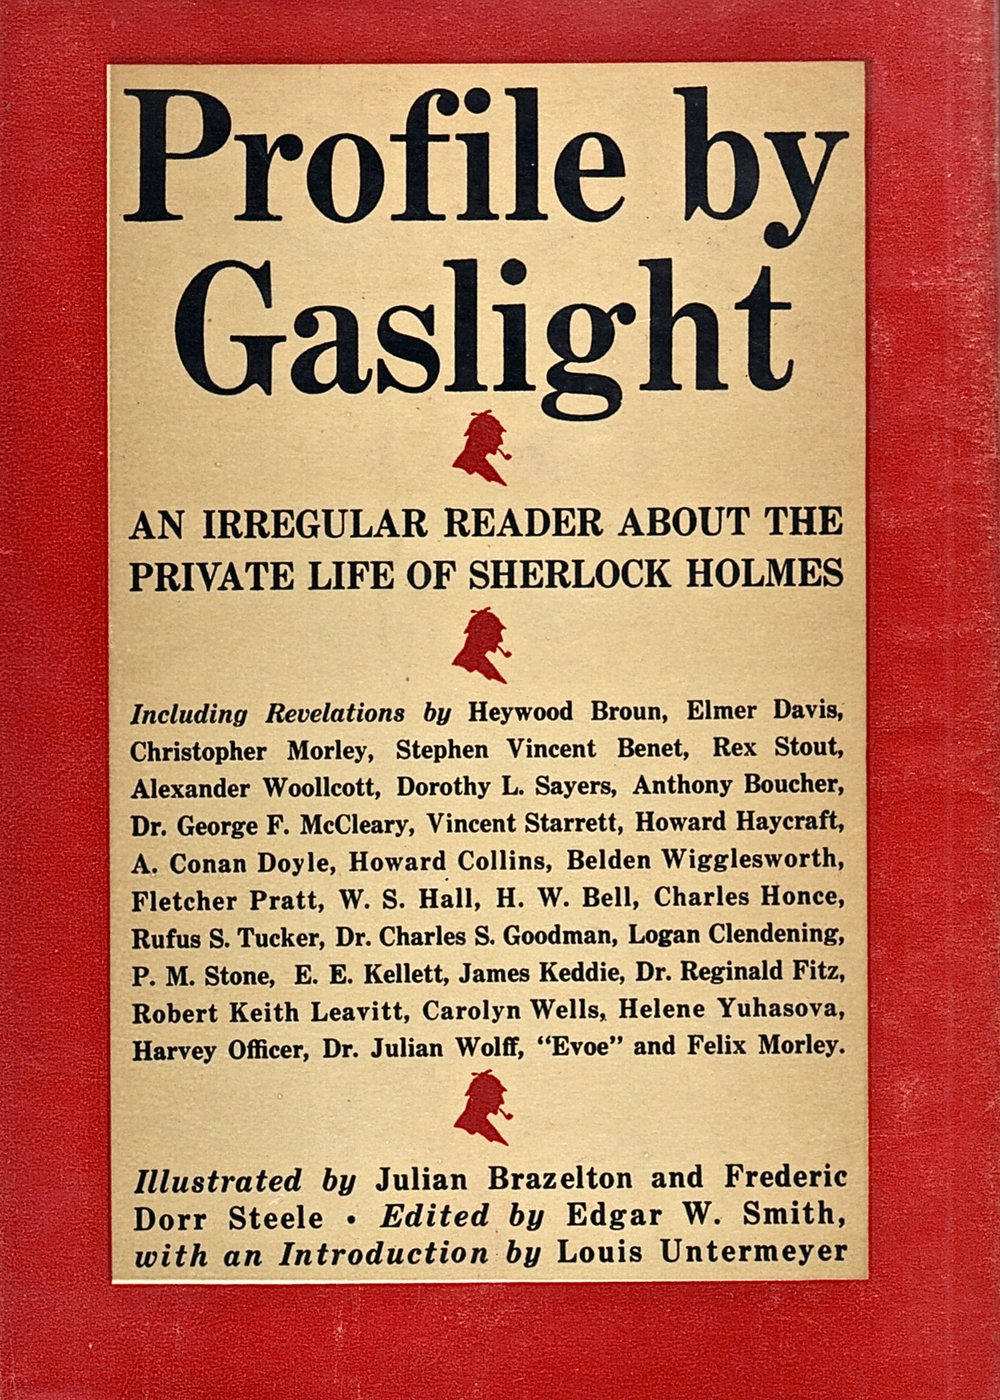 The dust jacket for Edgar Smith's anthology. Starrett contributed two poems and an essay on Mrs. Hudson, all reprinted from earlier publications.